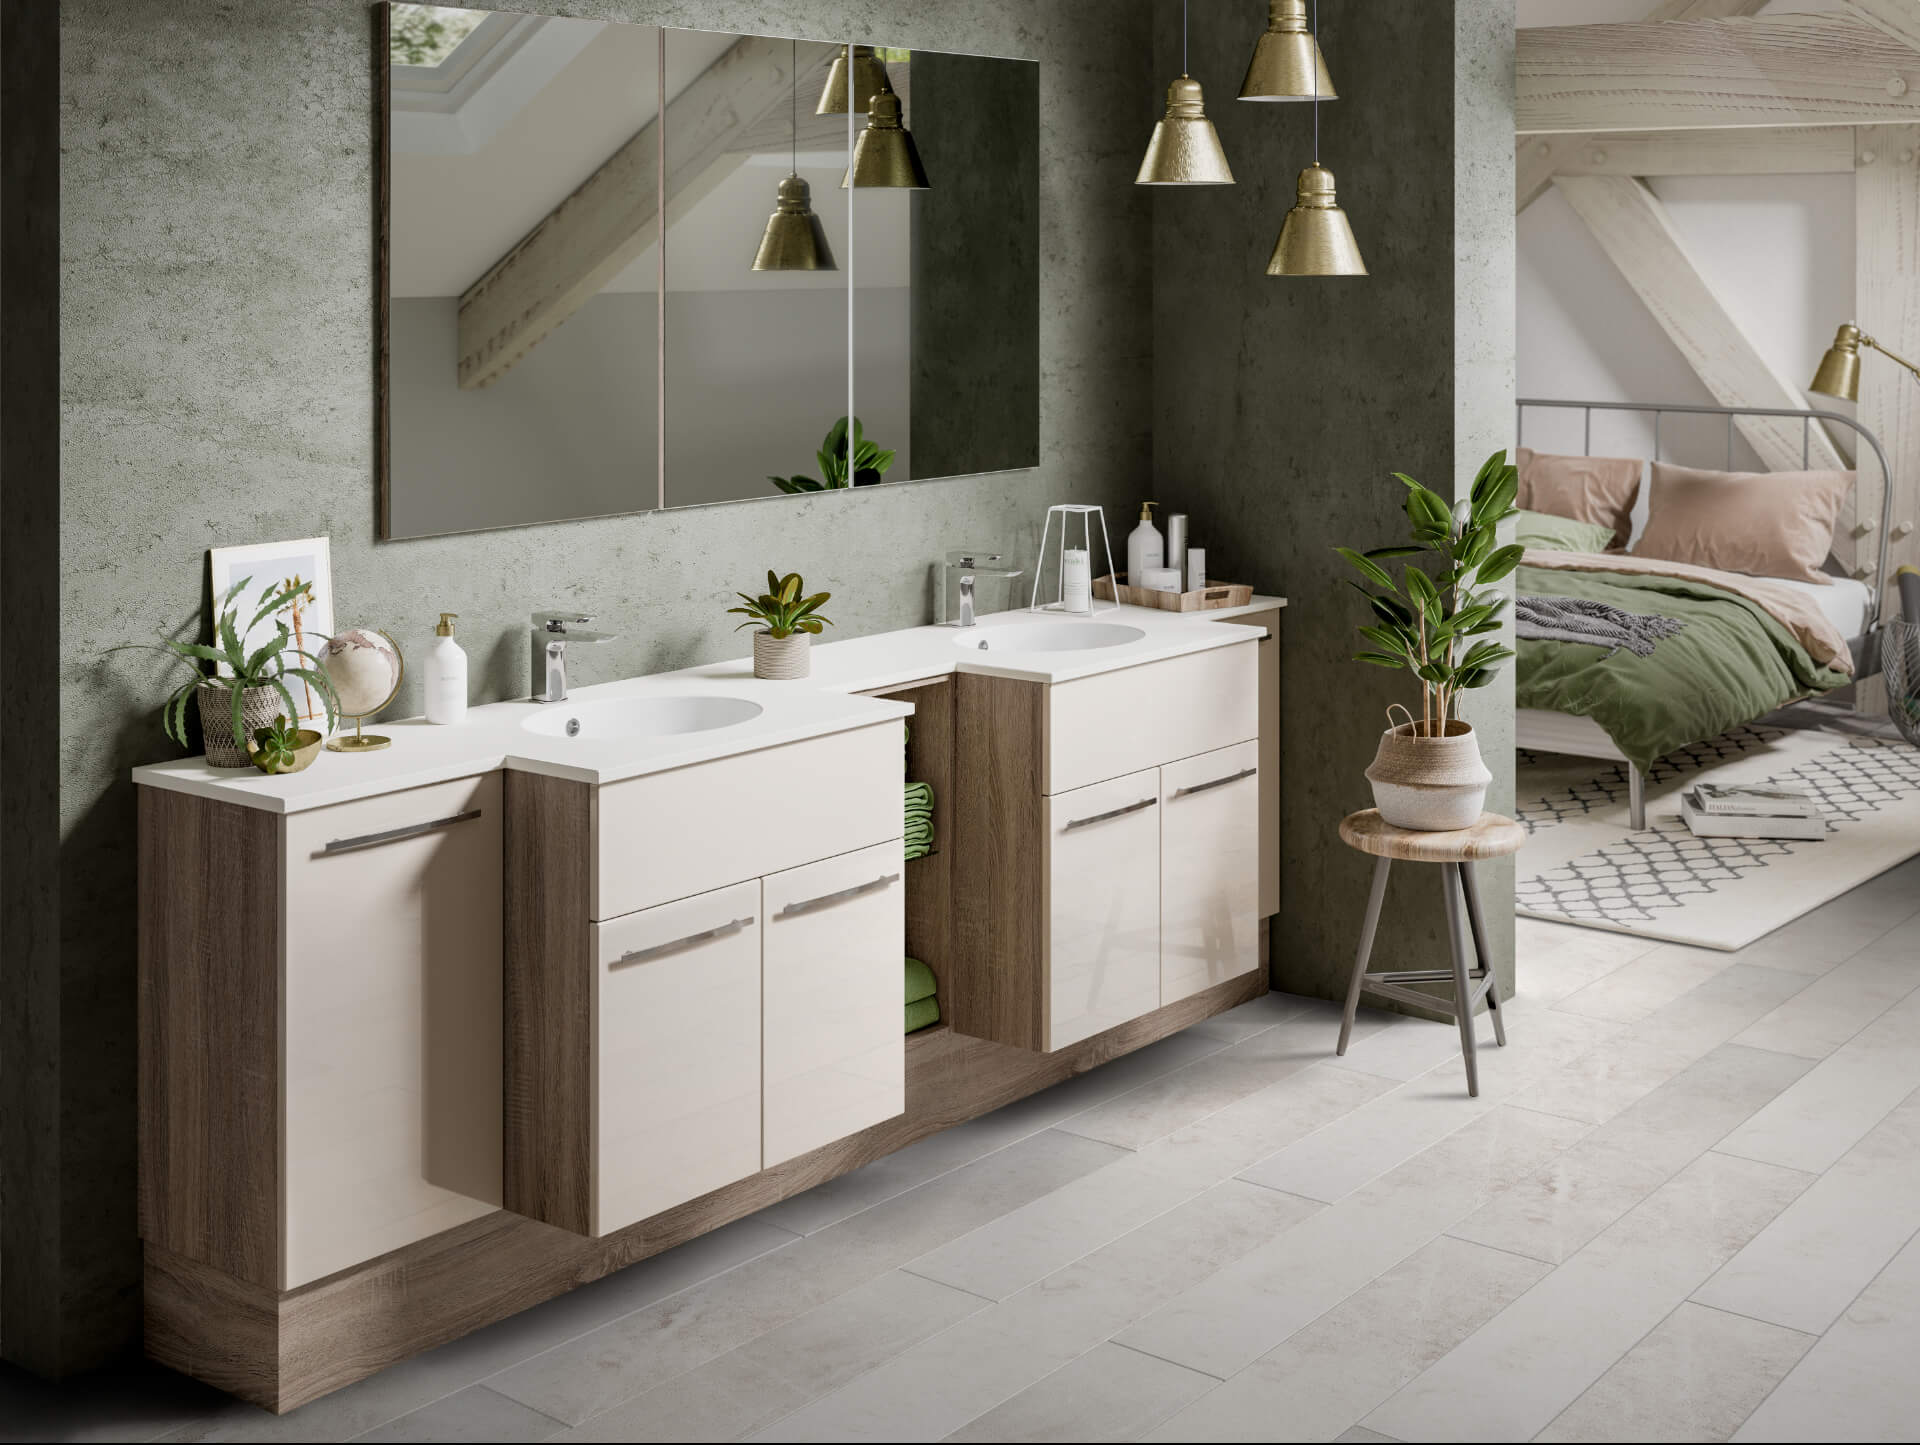 Nolte Original Fitted Ivory Wooden Bathroom